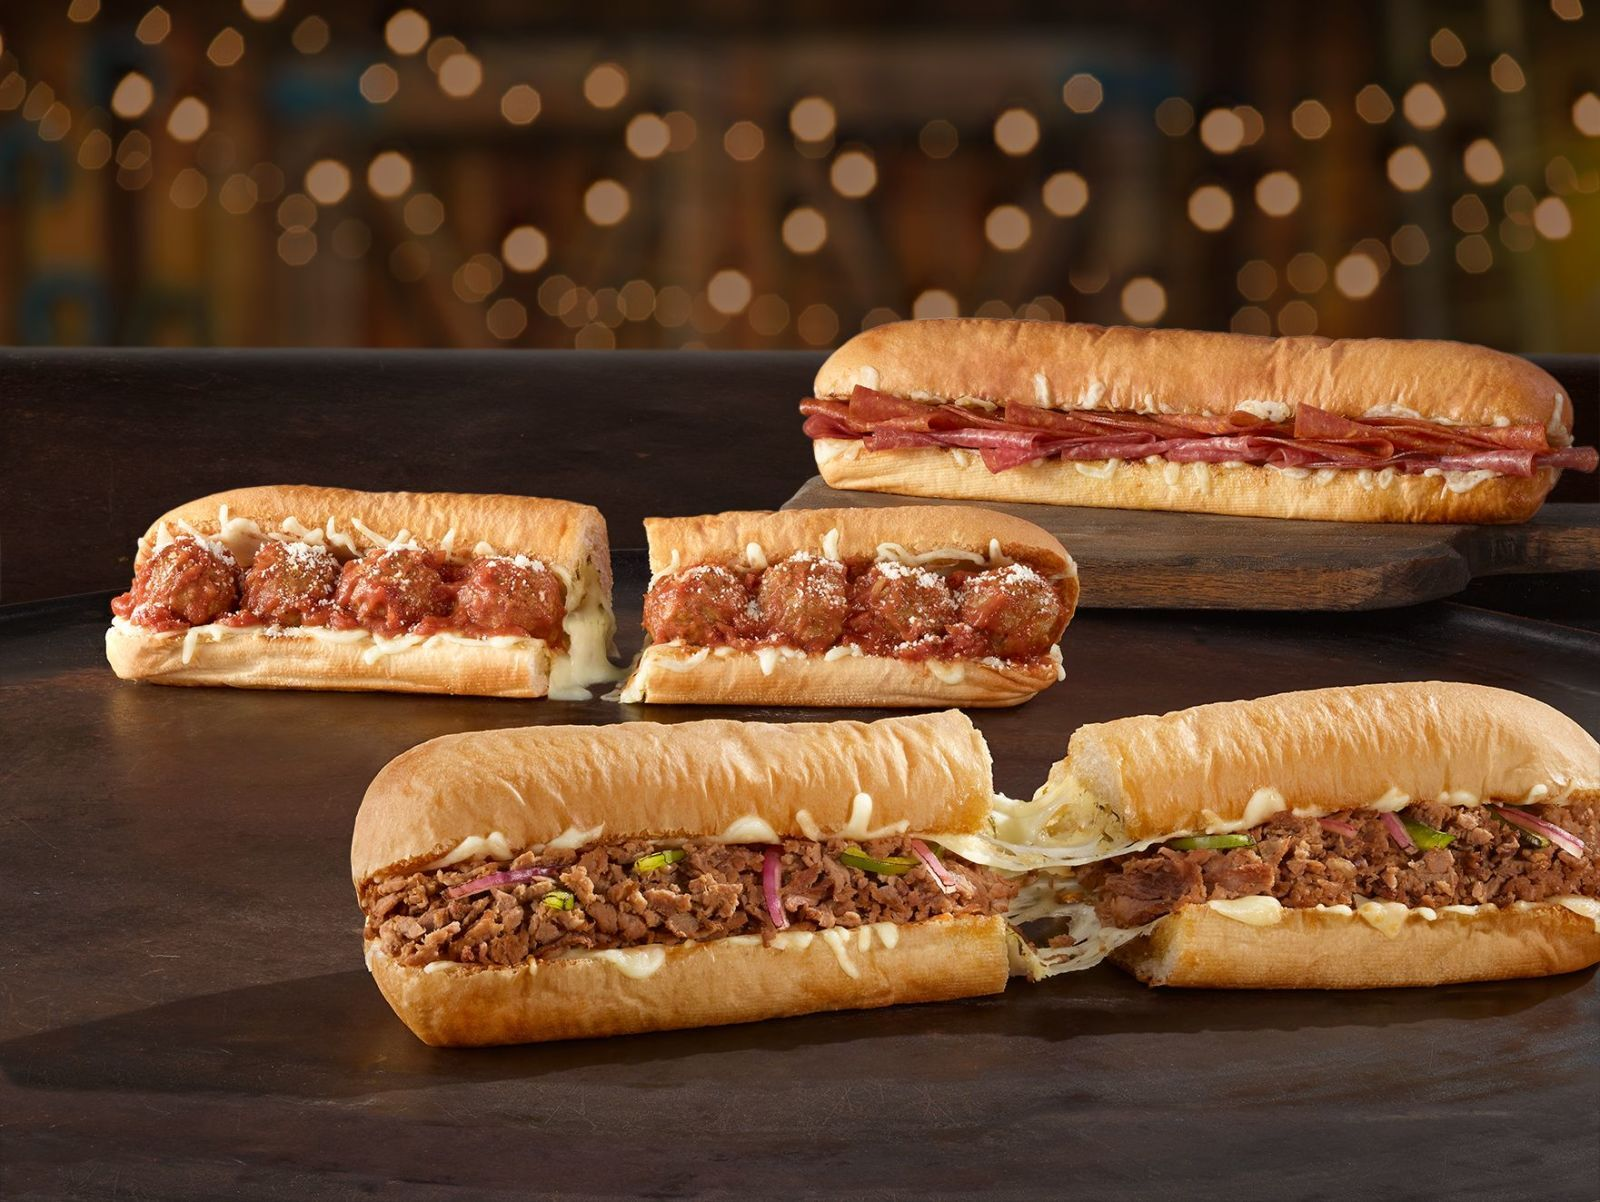 Subway brought it back, Ultimate Cheesy Garlic Bread has returned